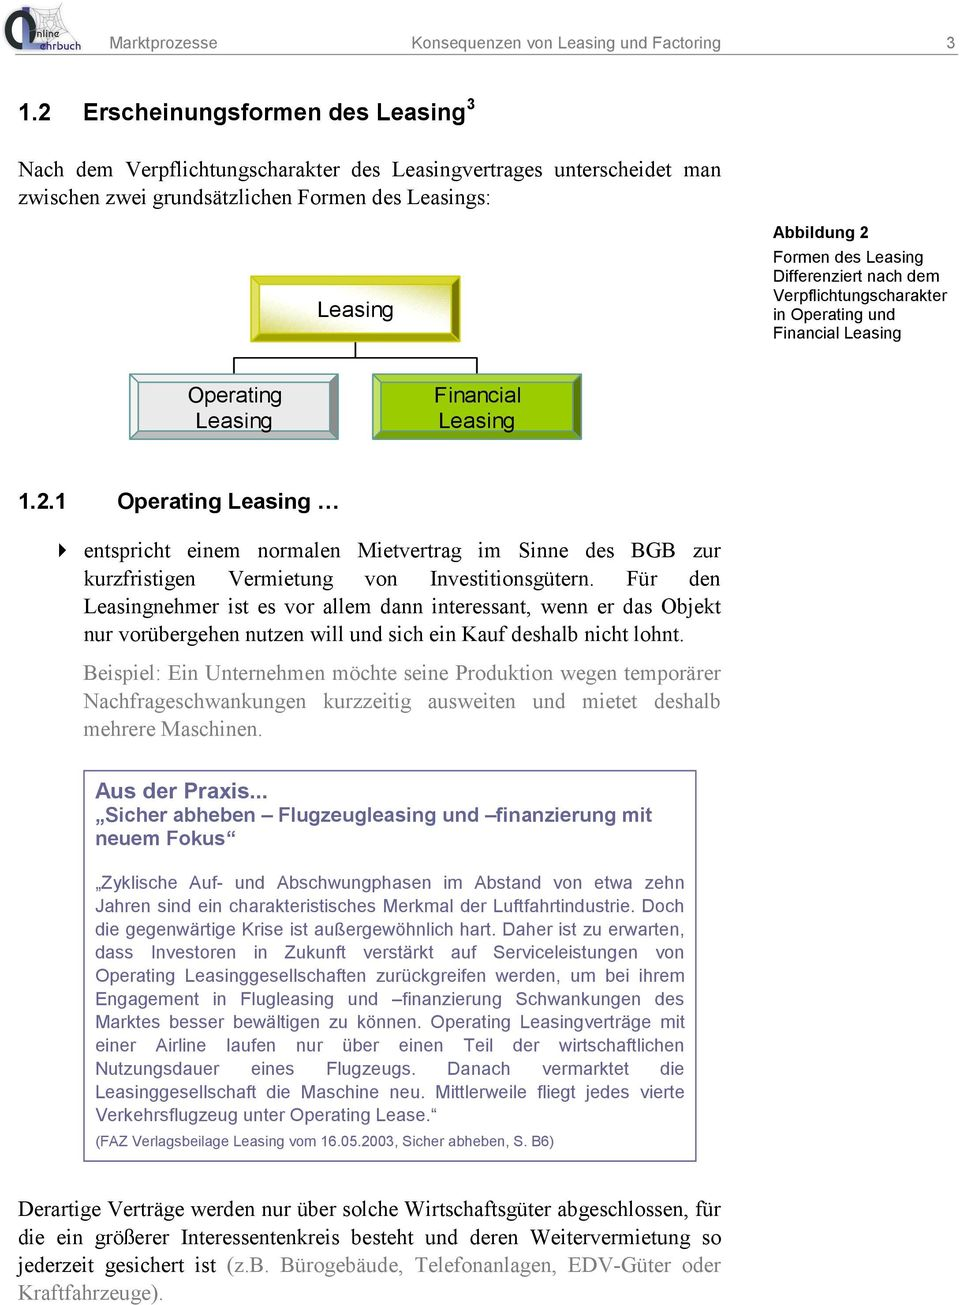 Differenziert nach dem Verpflichtungscharakter in Operating und Financial Leasing Operating Leasing Financial Leasing 1.2.